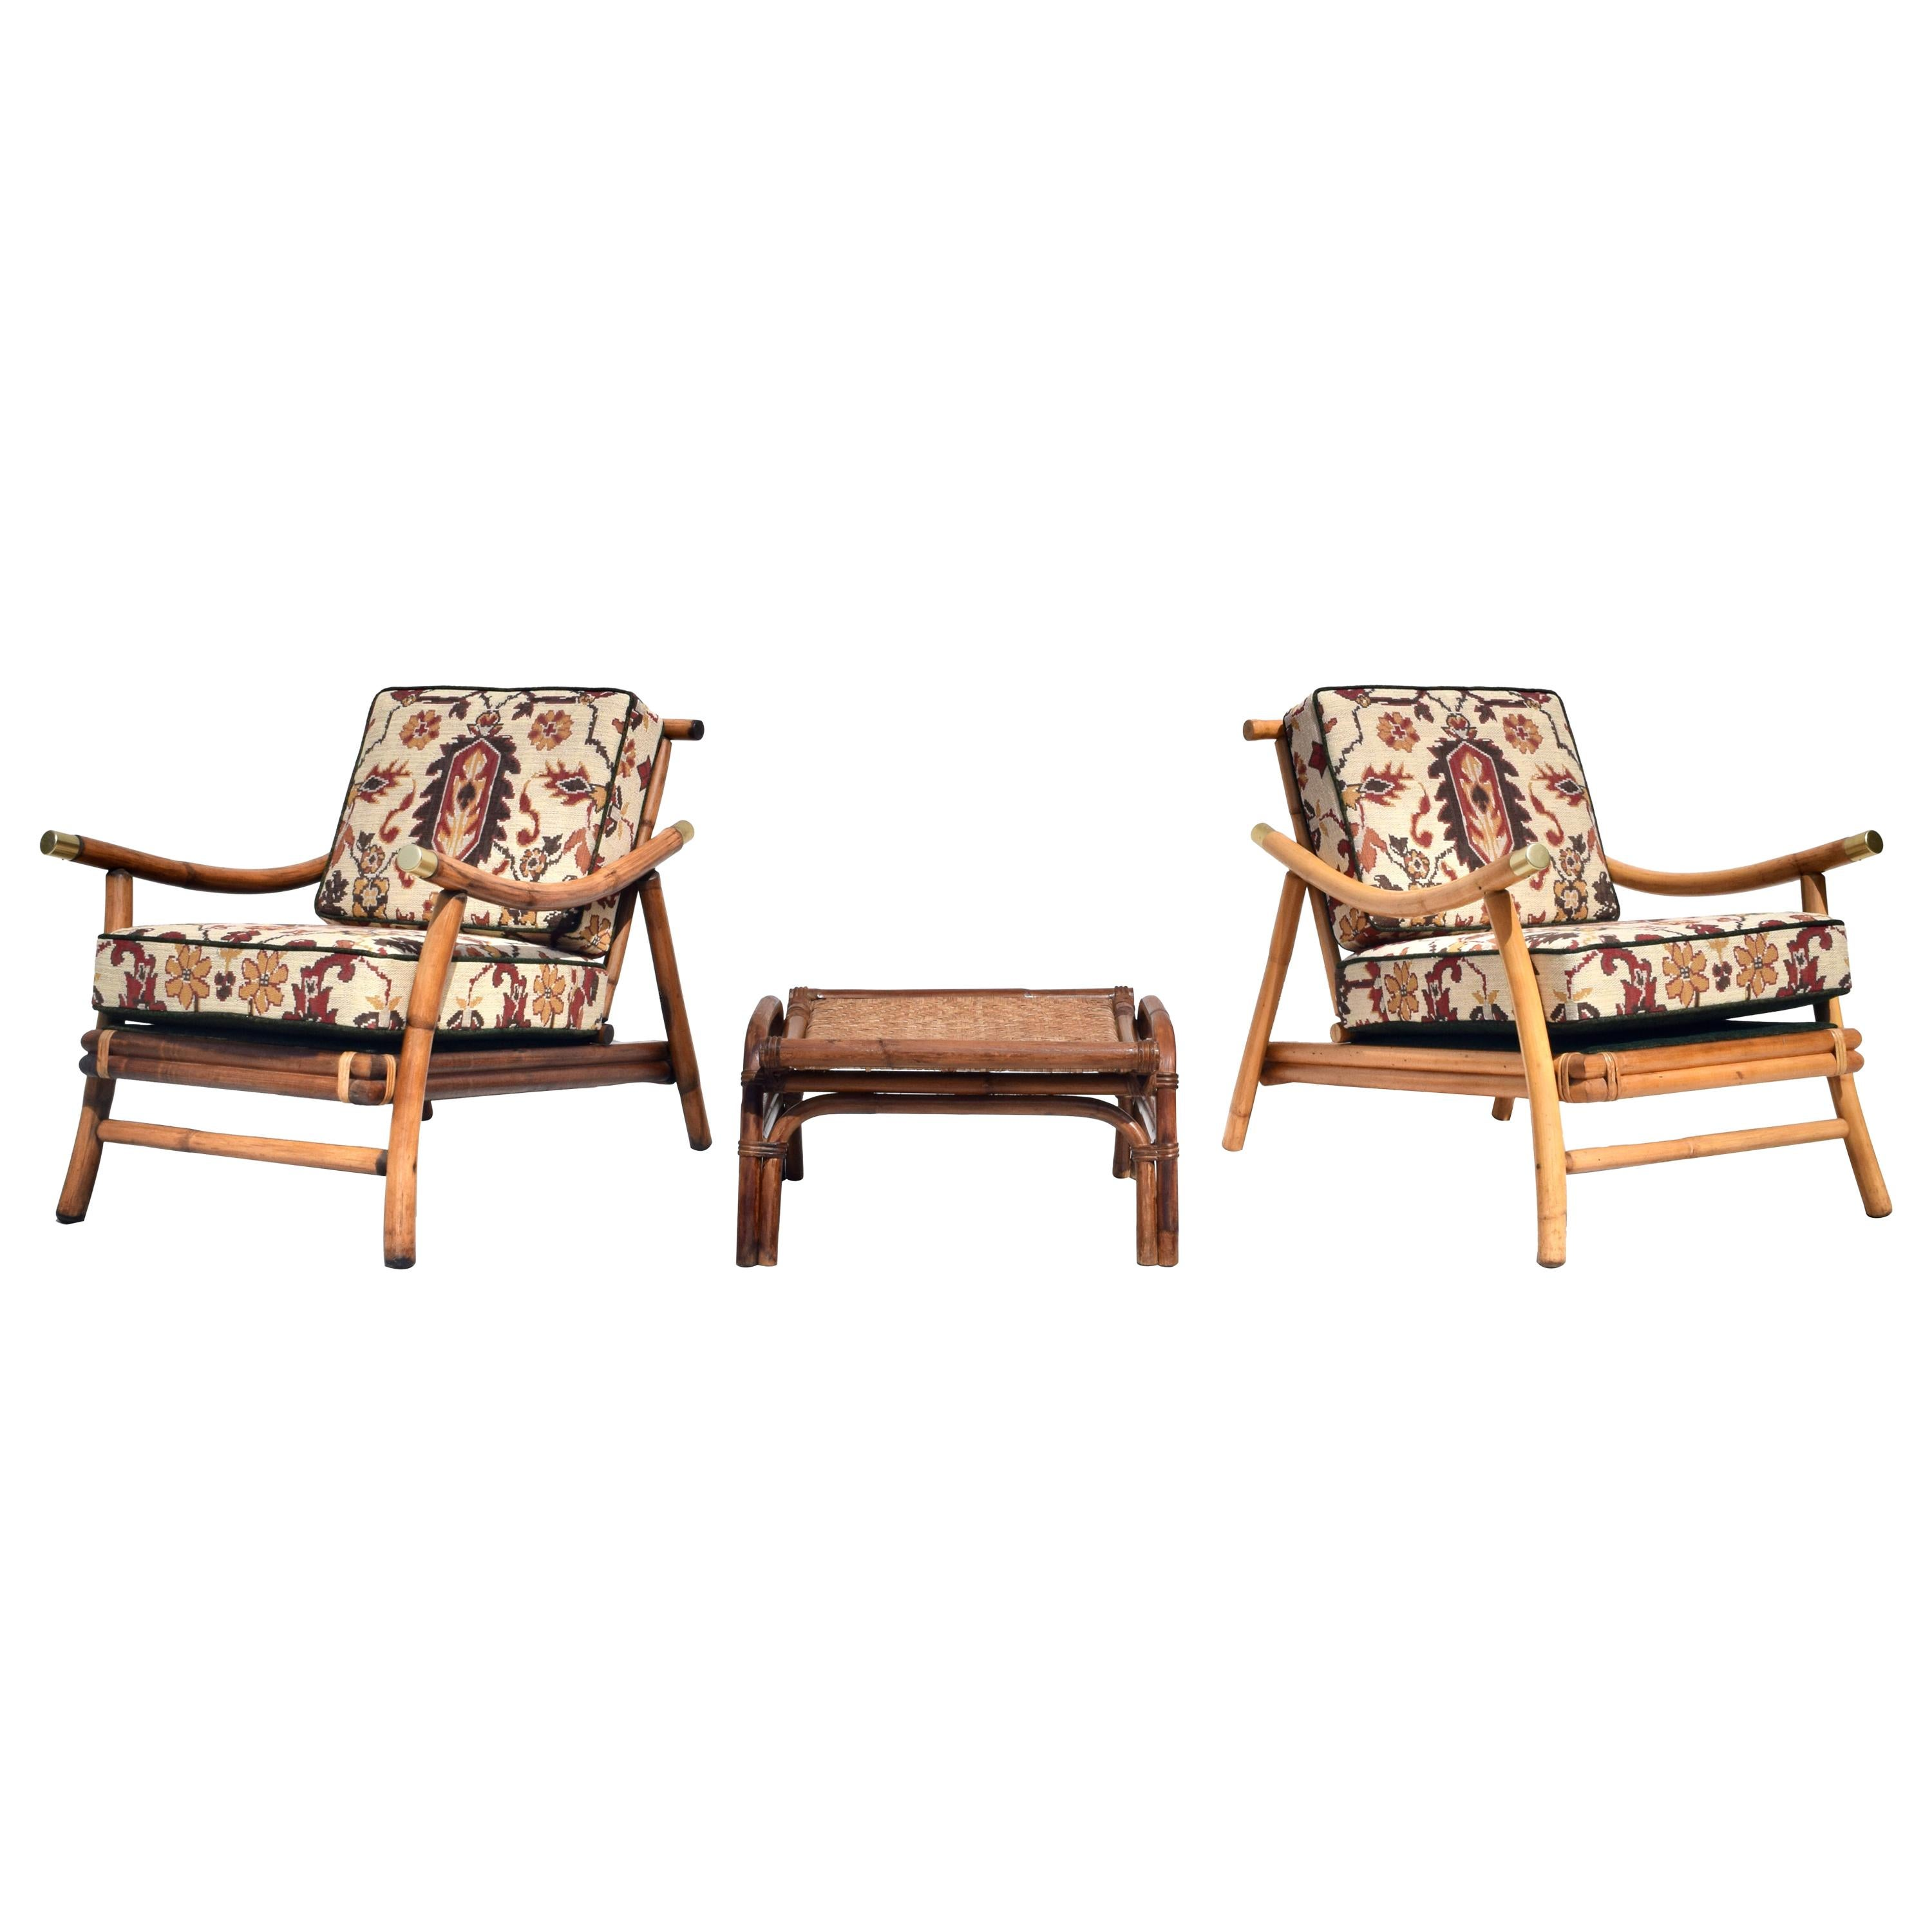 Pagoda Rattan Chairs Ottoman Set in the Manner of John Wisner Ficks Reed